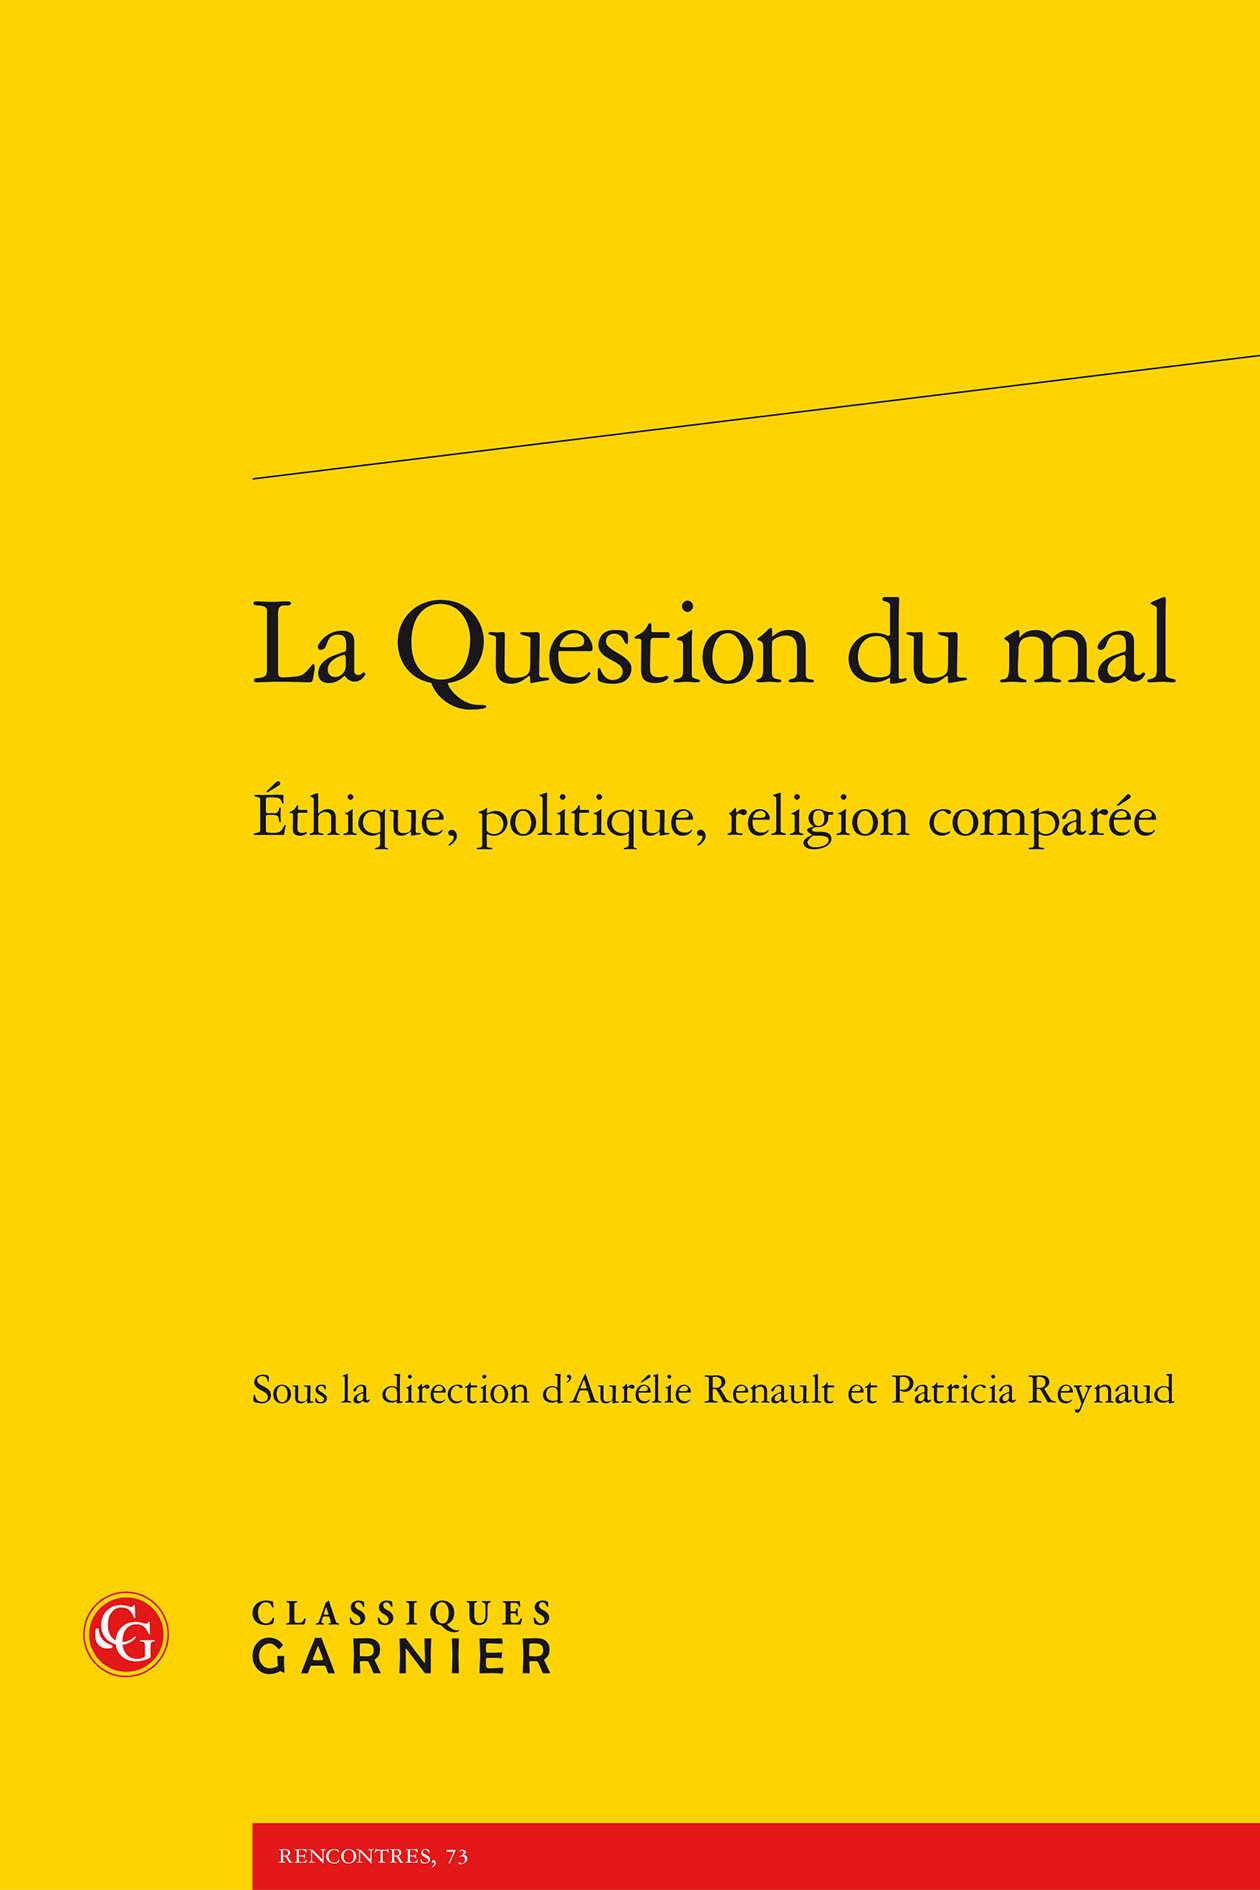 LA QUESTION DU MAL - ETHIQUE, POLITIQUE, RELIGION COMPAREE